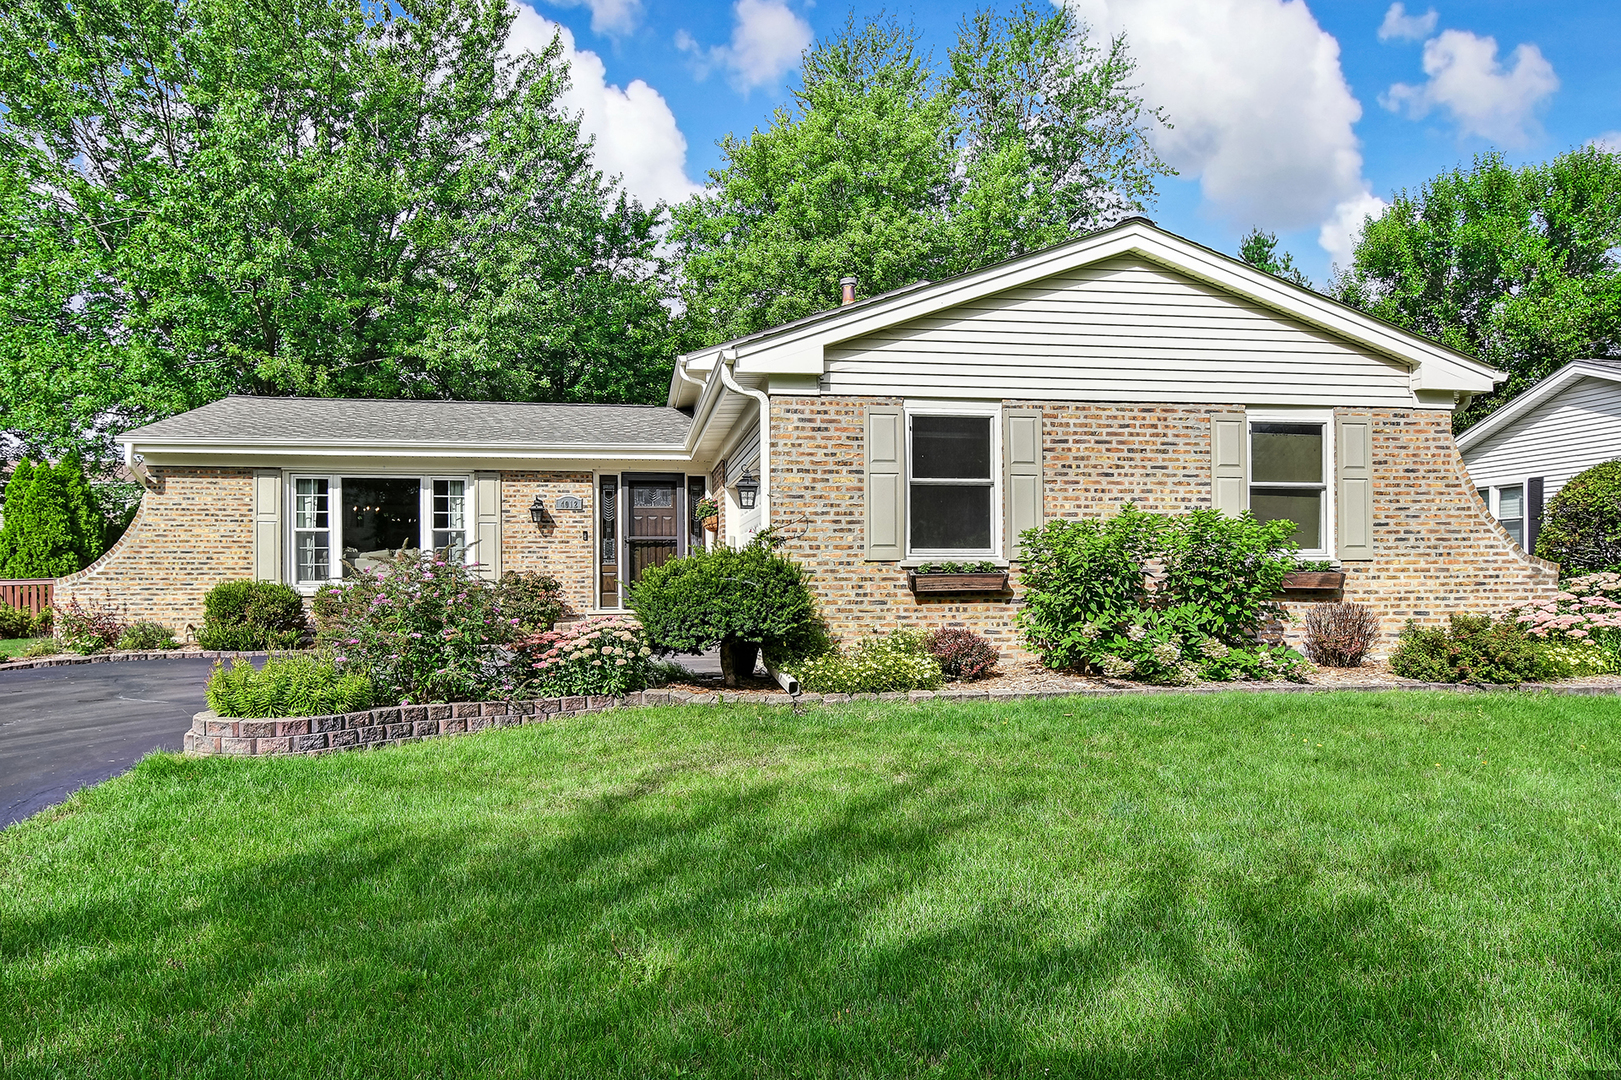 Photo for 4012 Roslyn Road, DOWNERS GROVE, IL 60515 (MLS # 10508792)